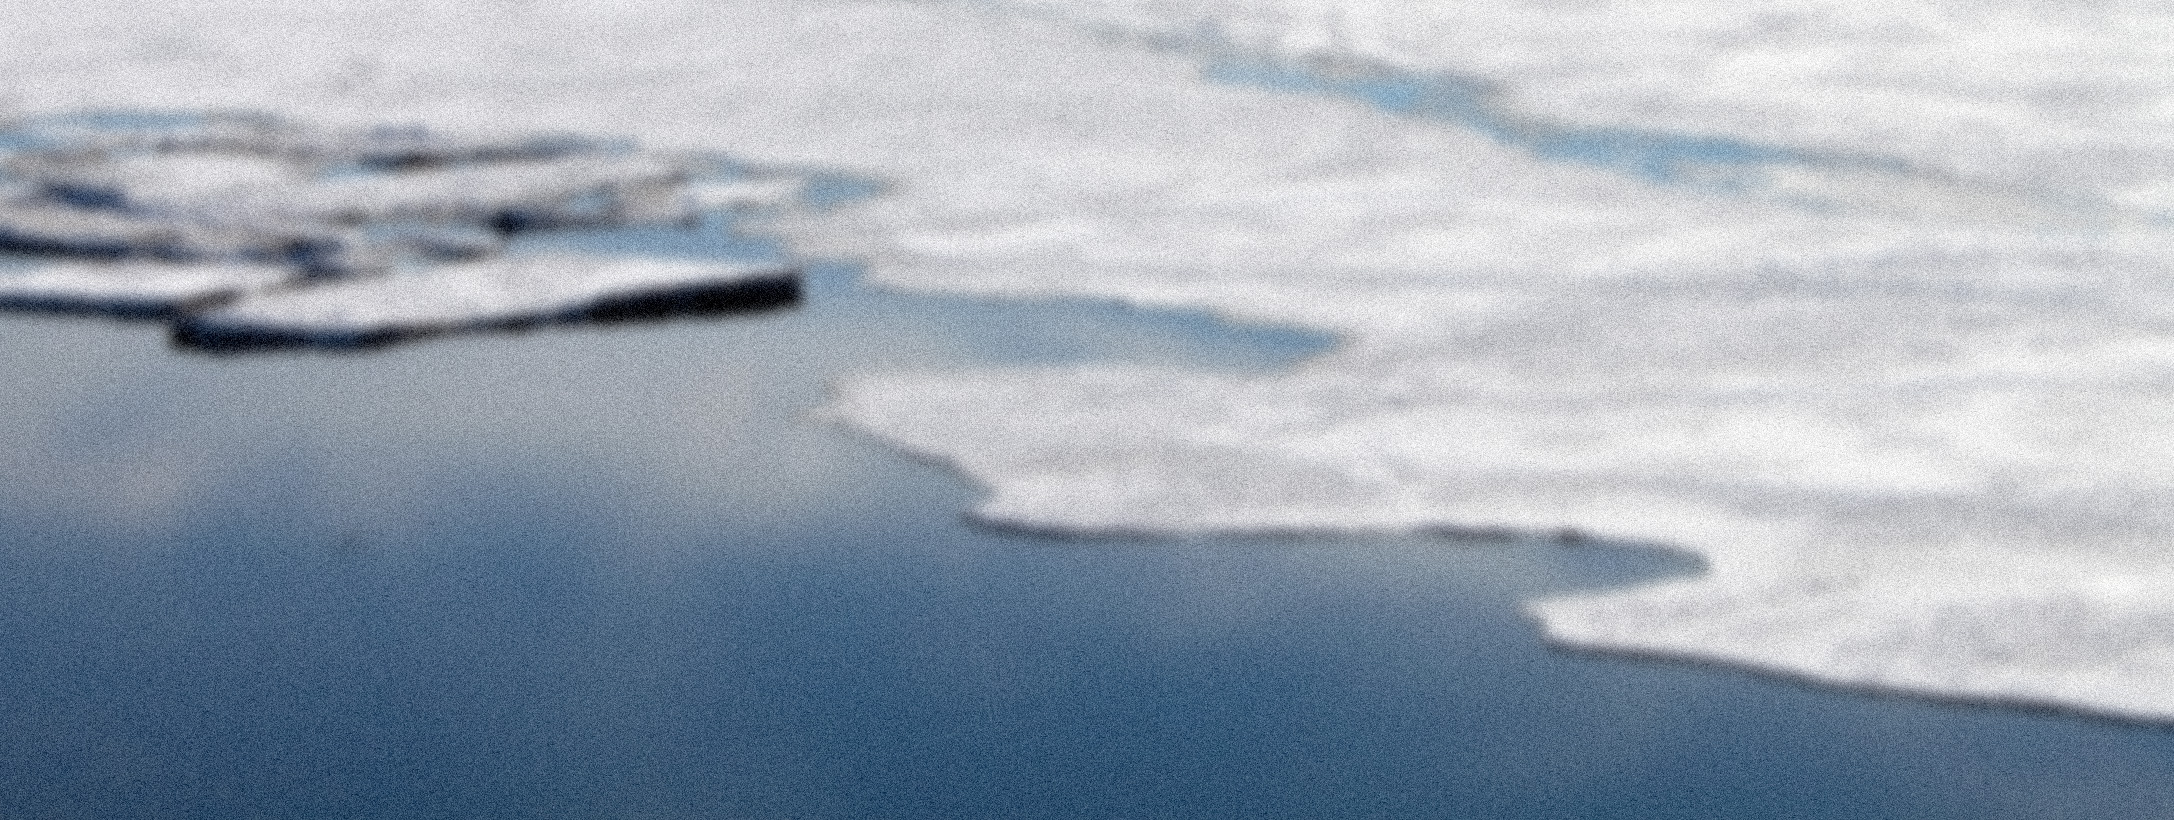 Photograph of ice in Antarctica